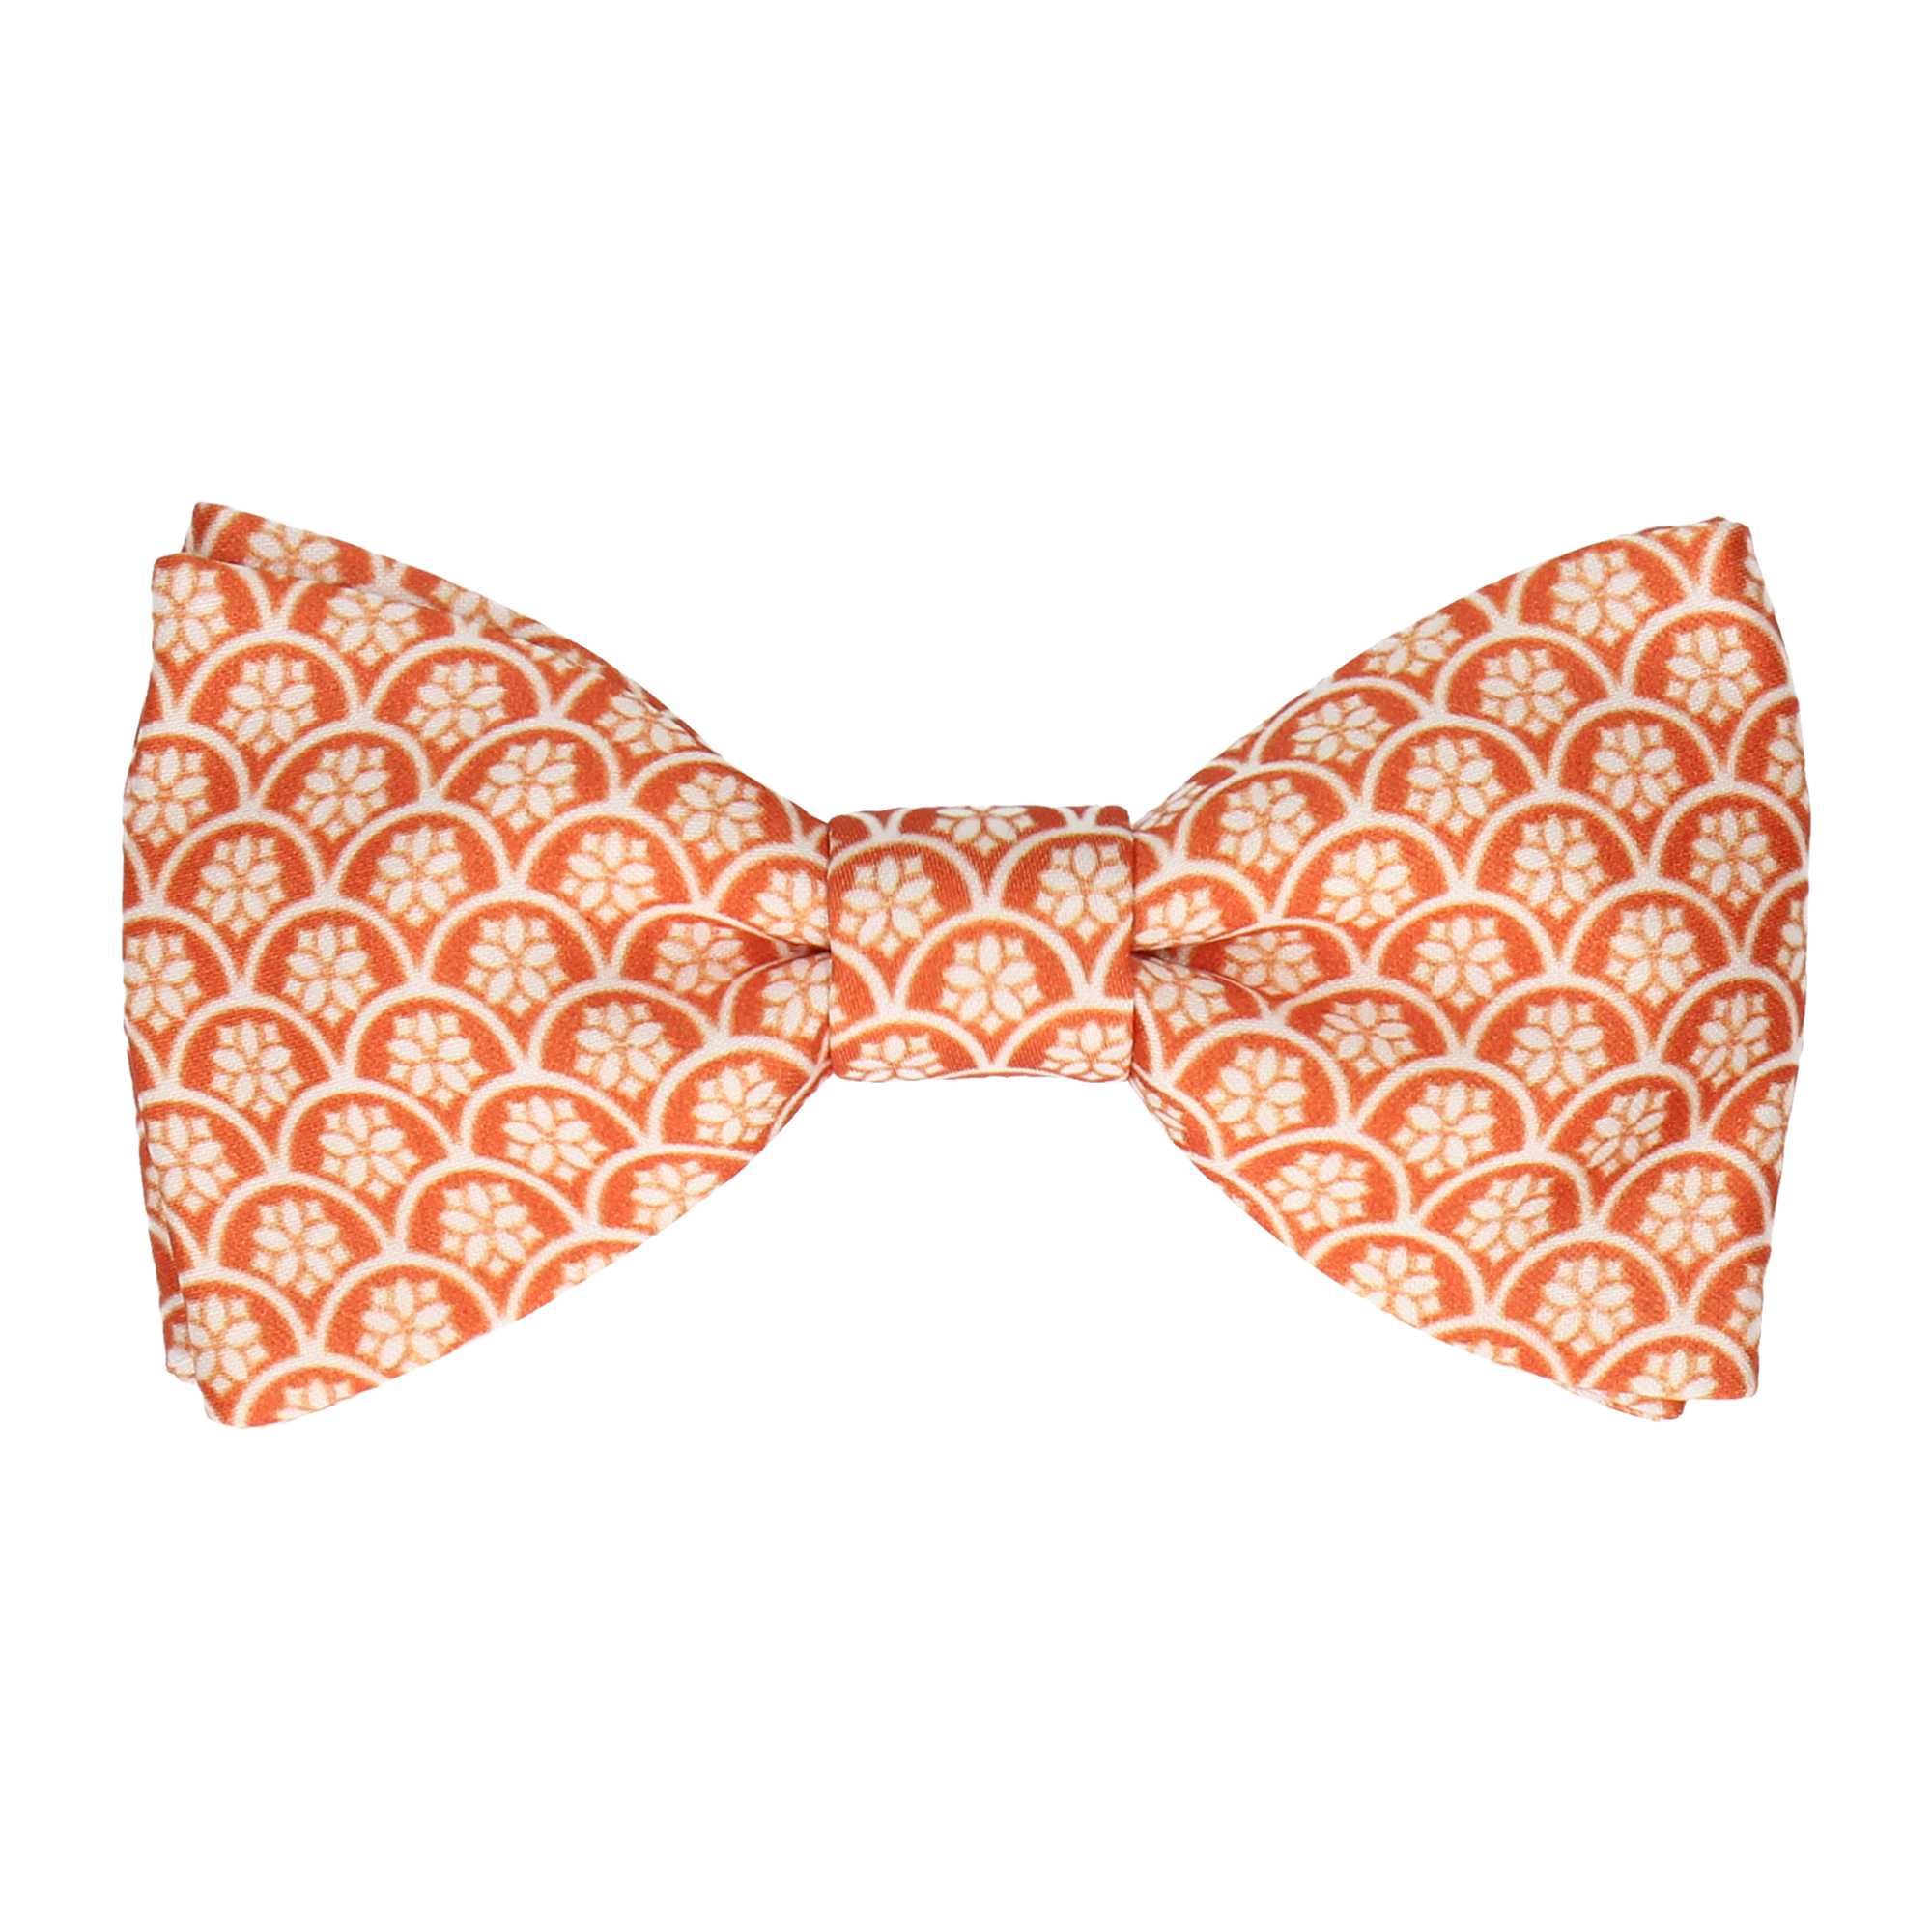 Fincham in Sunset Orange Bow Tie